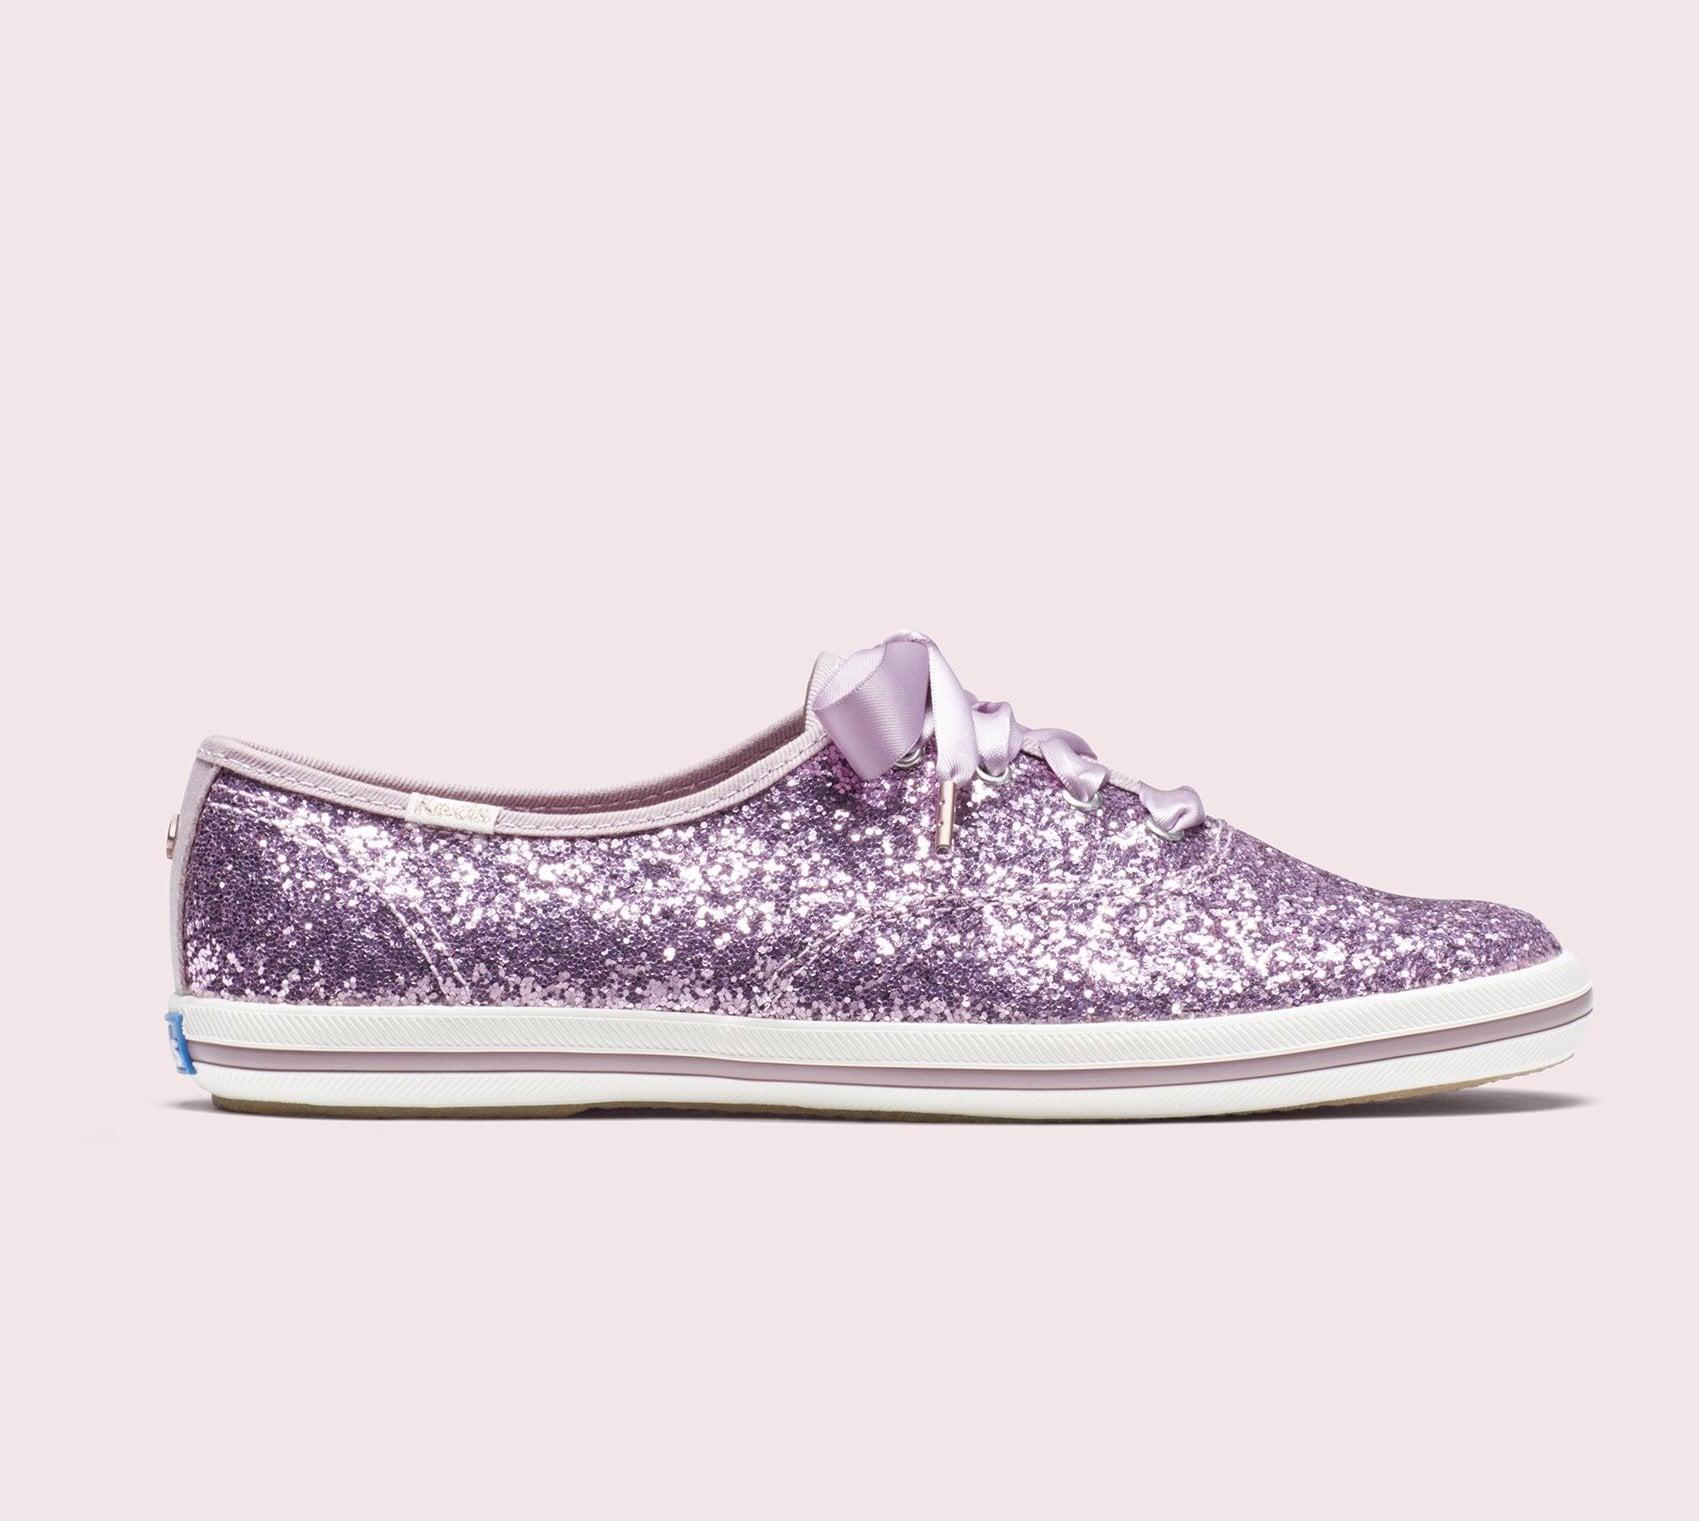 b7a30baa156 Keds x Kate Spade NY Released Lavender Glitter Sneakers